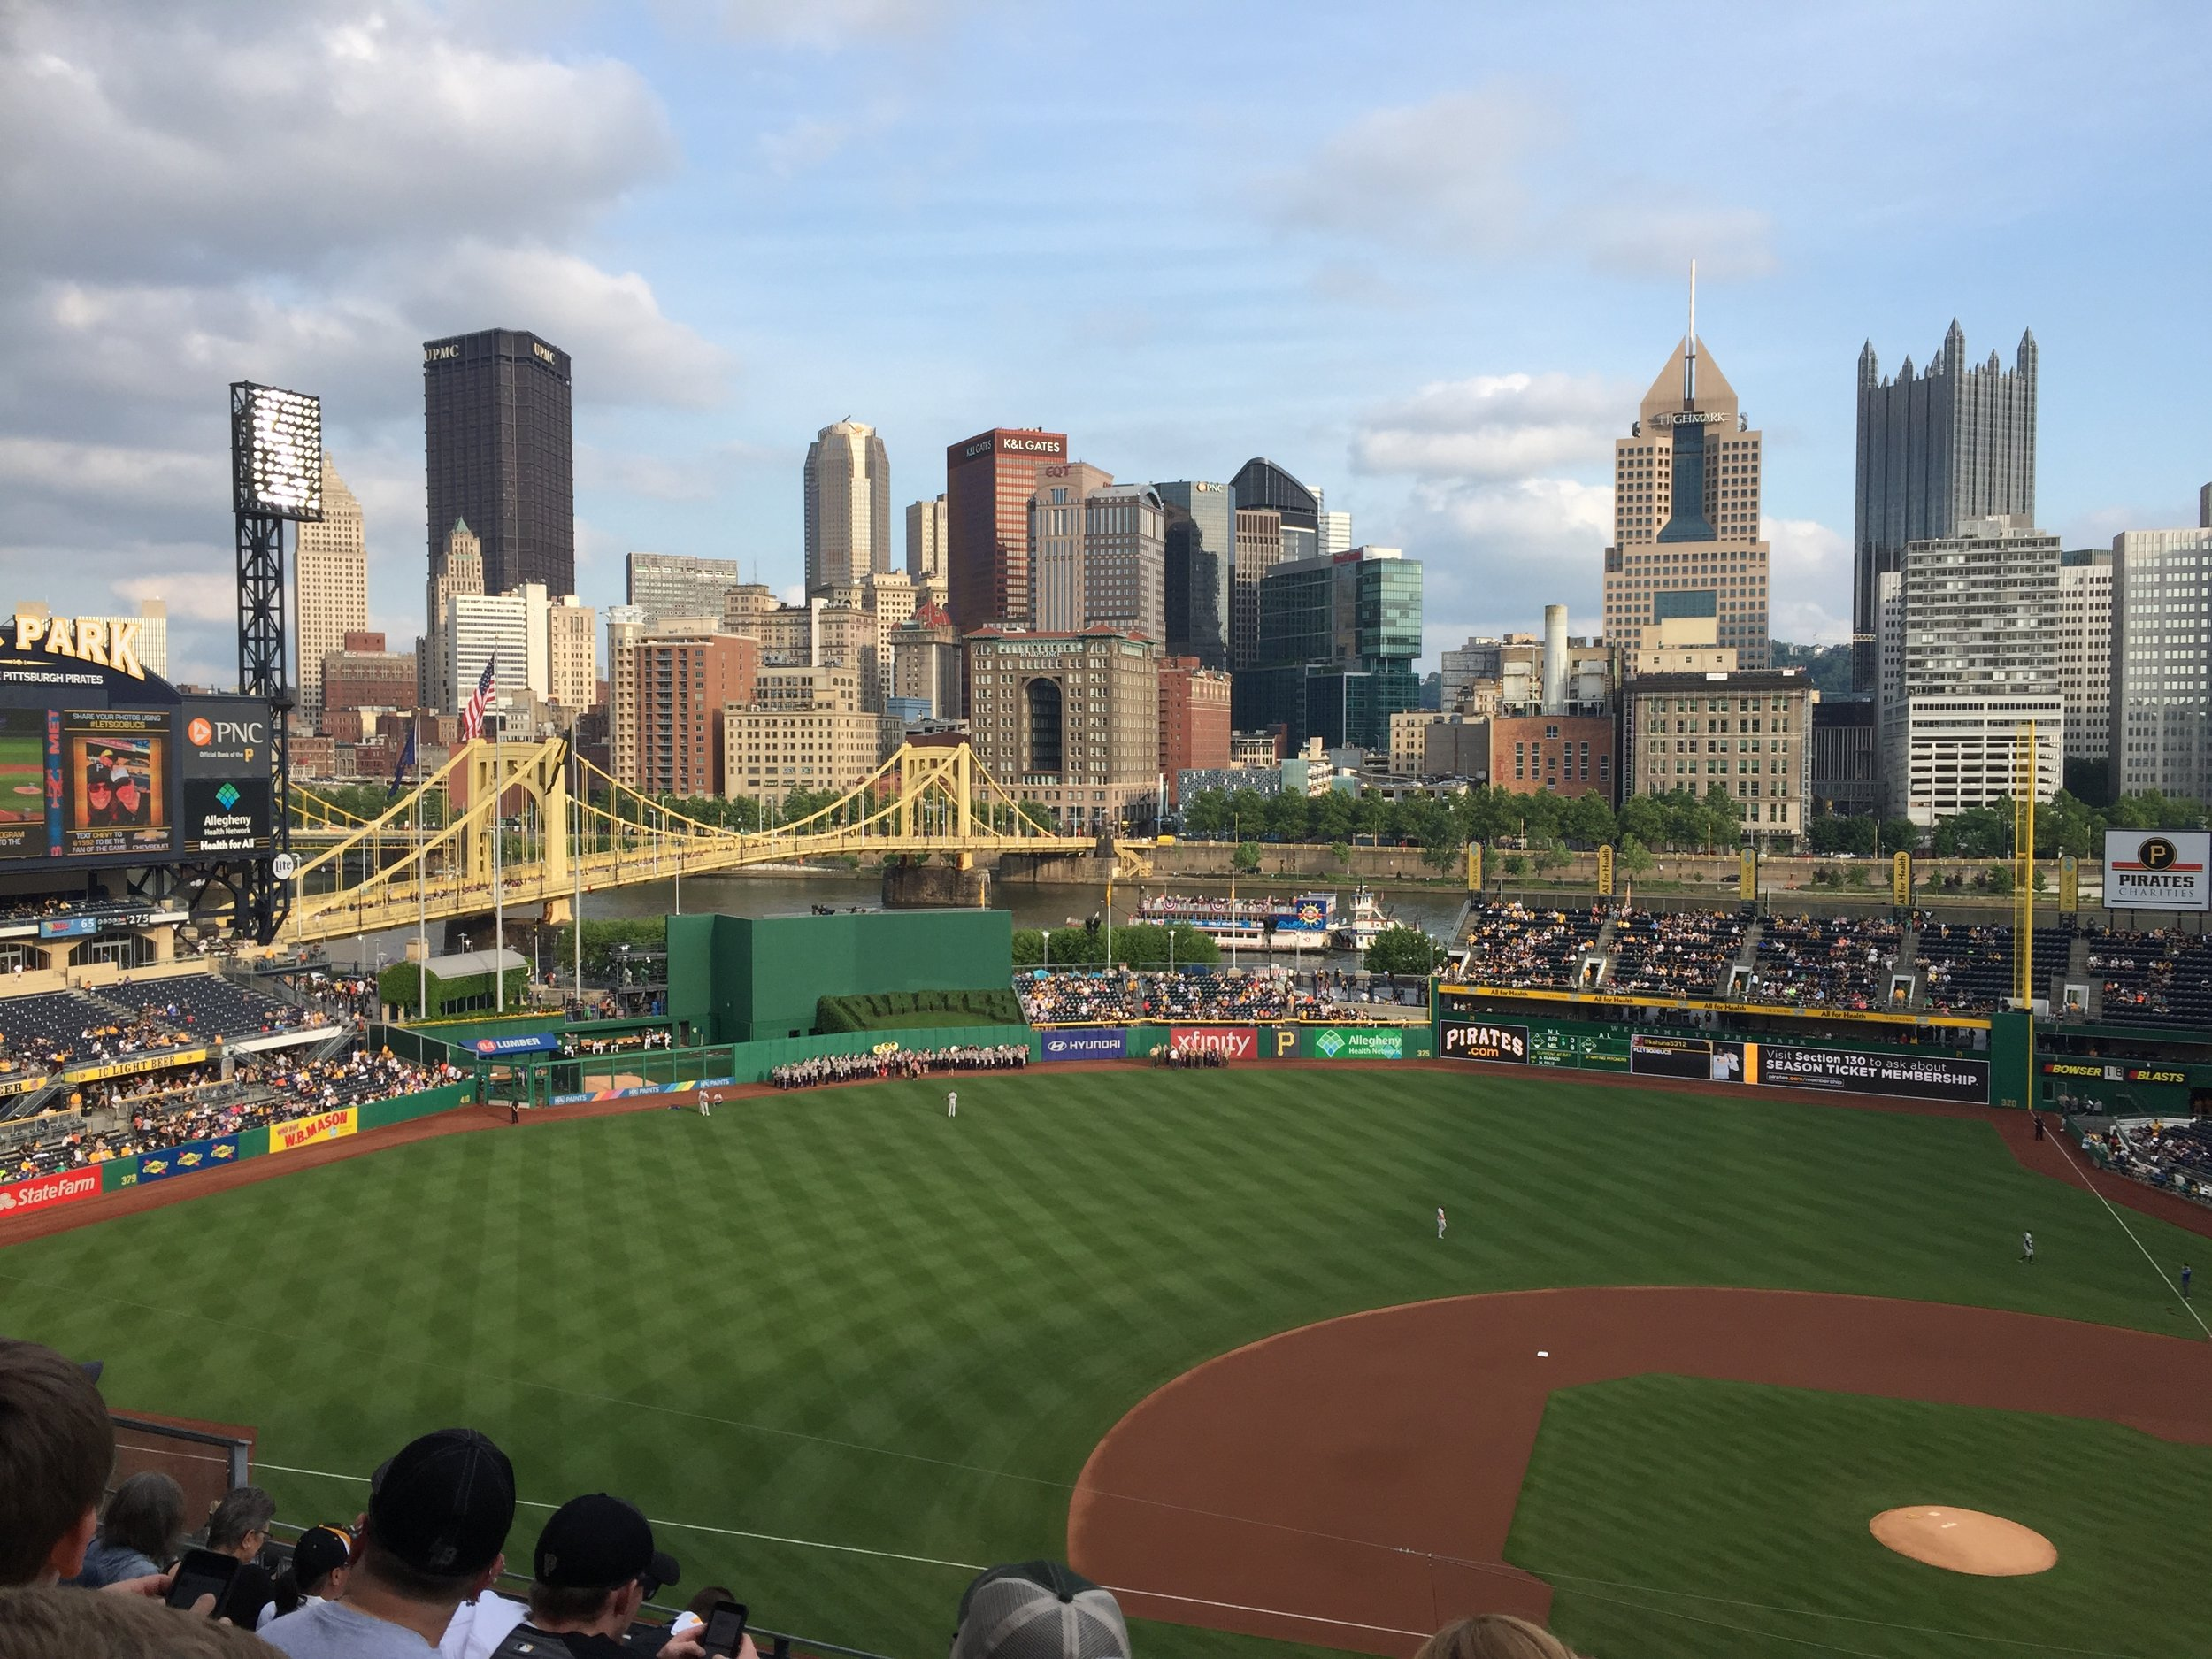 Looking out at the stadium, the river, and the city. Can't get much better than this!